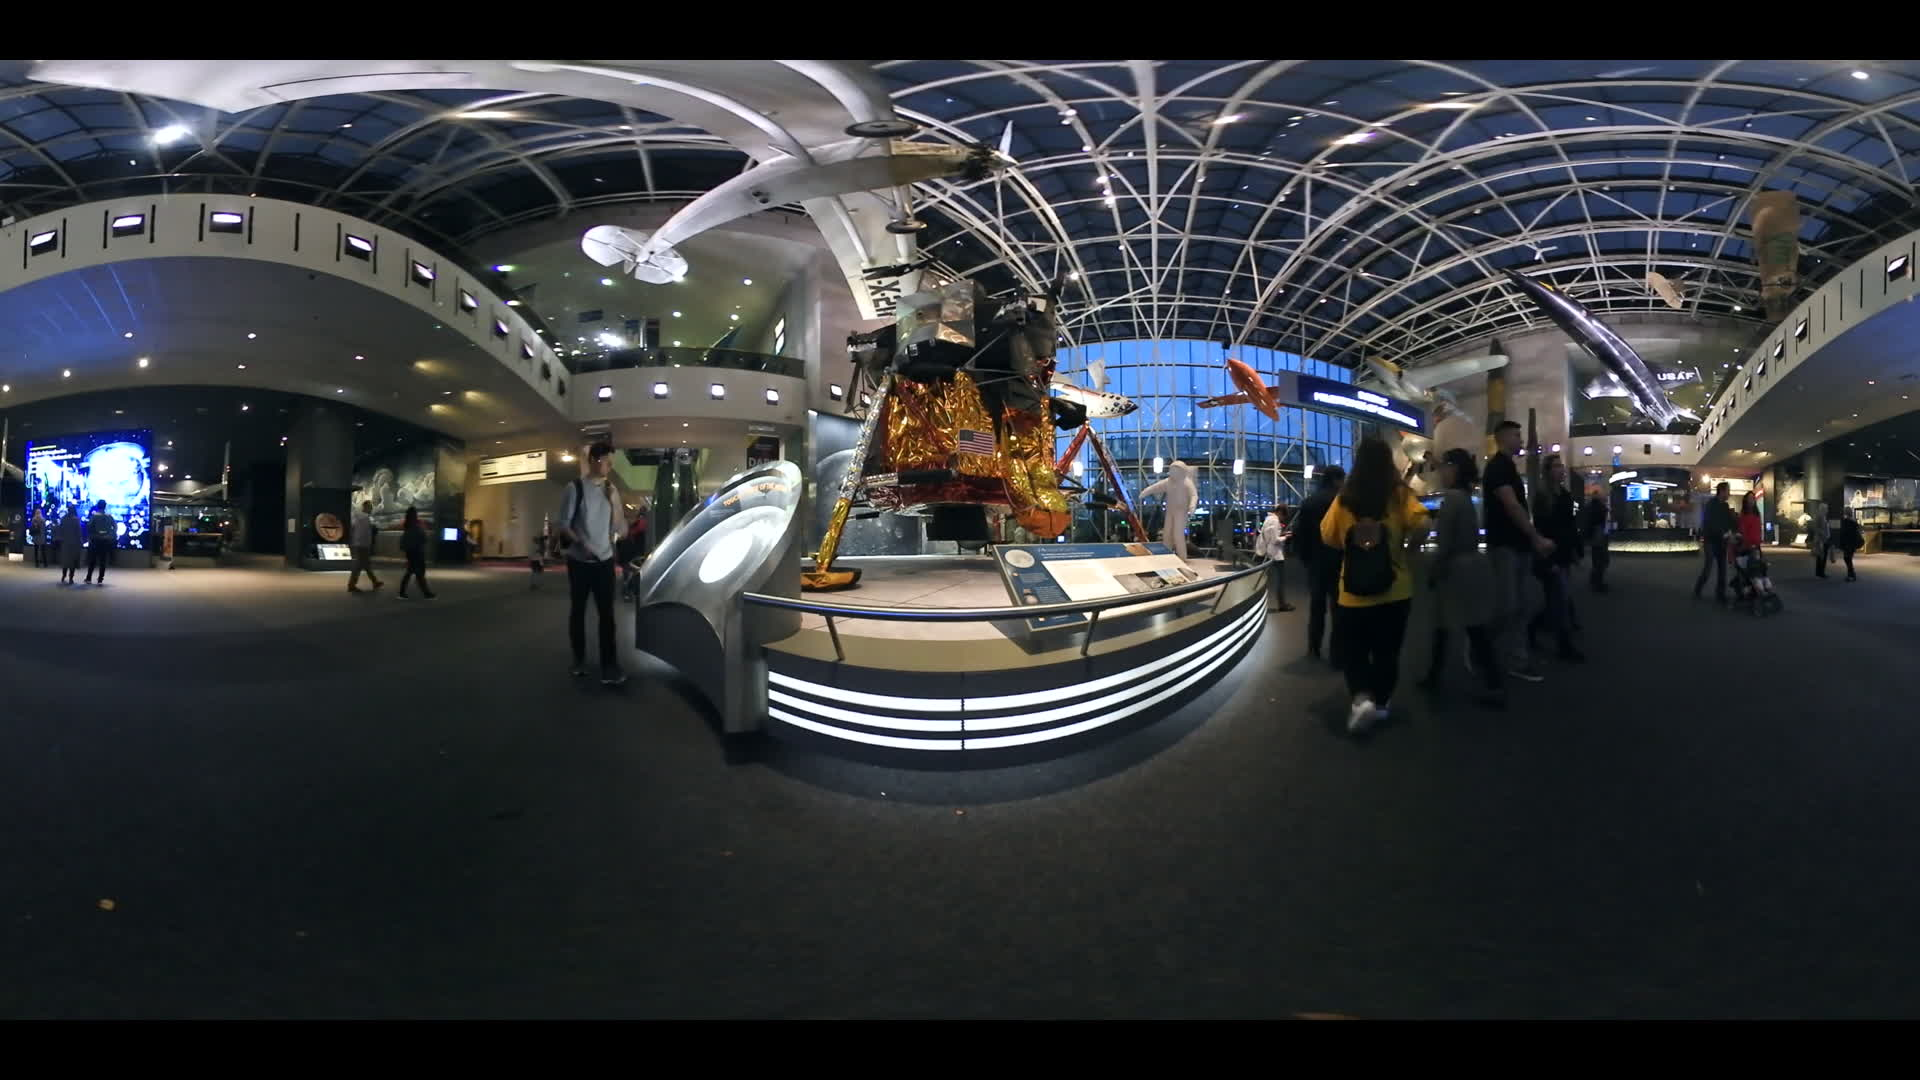 Moon Landing 360 VR Video Smithsonian Air And Space Museum at Night Washington DC